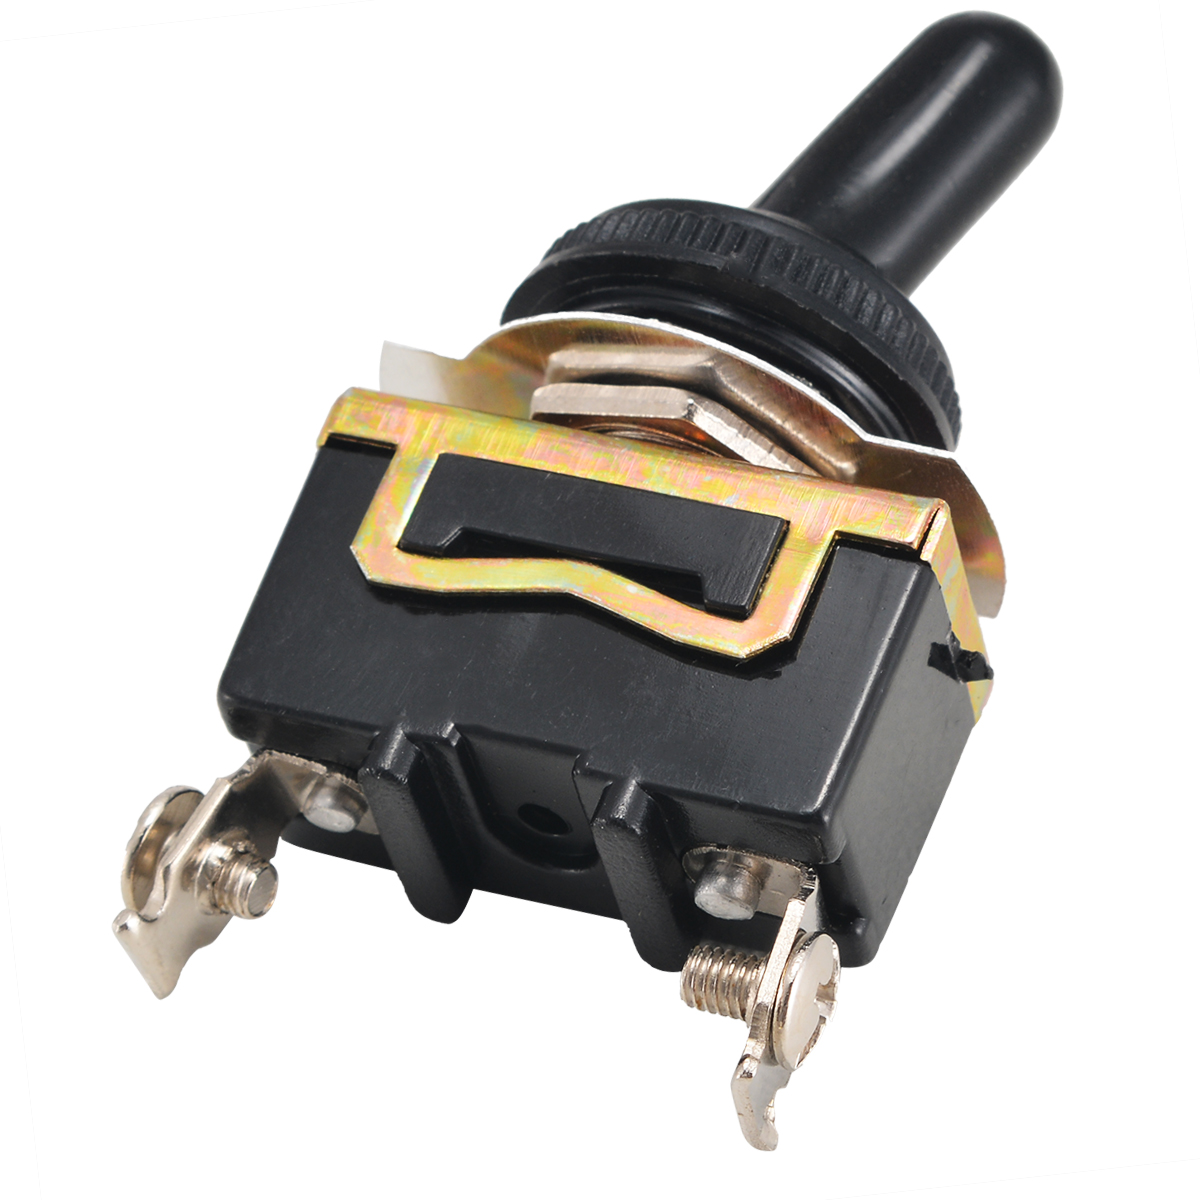 5pcs Lot Heavy Duty Toggle Switch 15a 250v 2 Pin On Off Rocker Spst Onoff Waterproof Boot Black Mini Switches Mayitr In From Lights Lighting